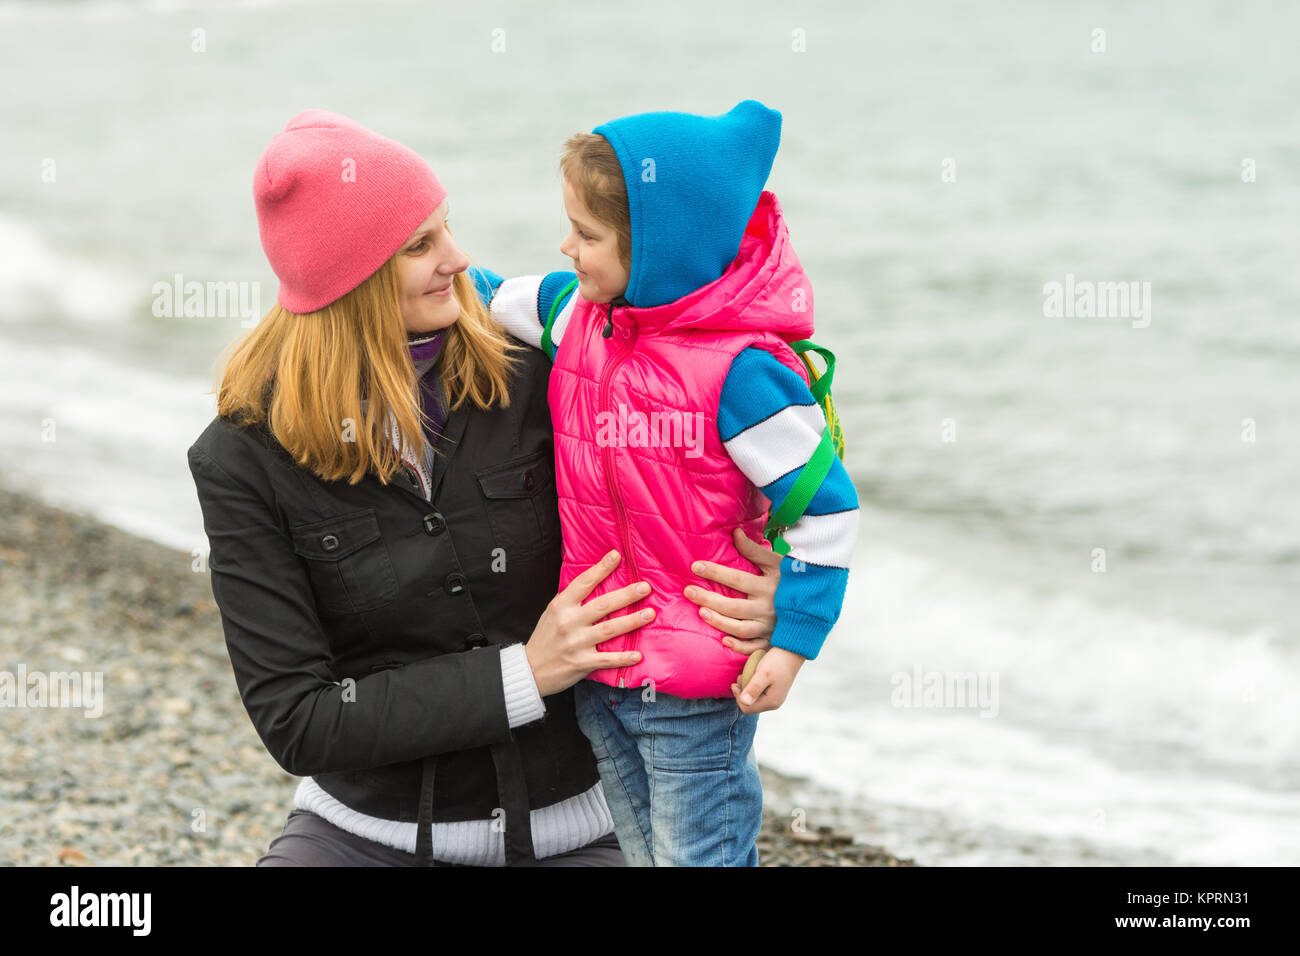 Mother hugging little daughter and tenderly looking at her on the beach in cold weather - Stock Image